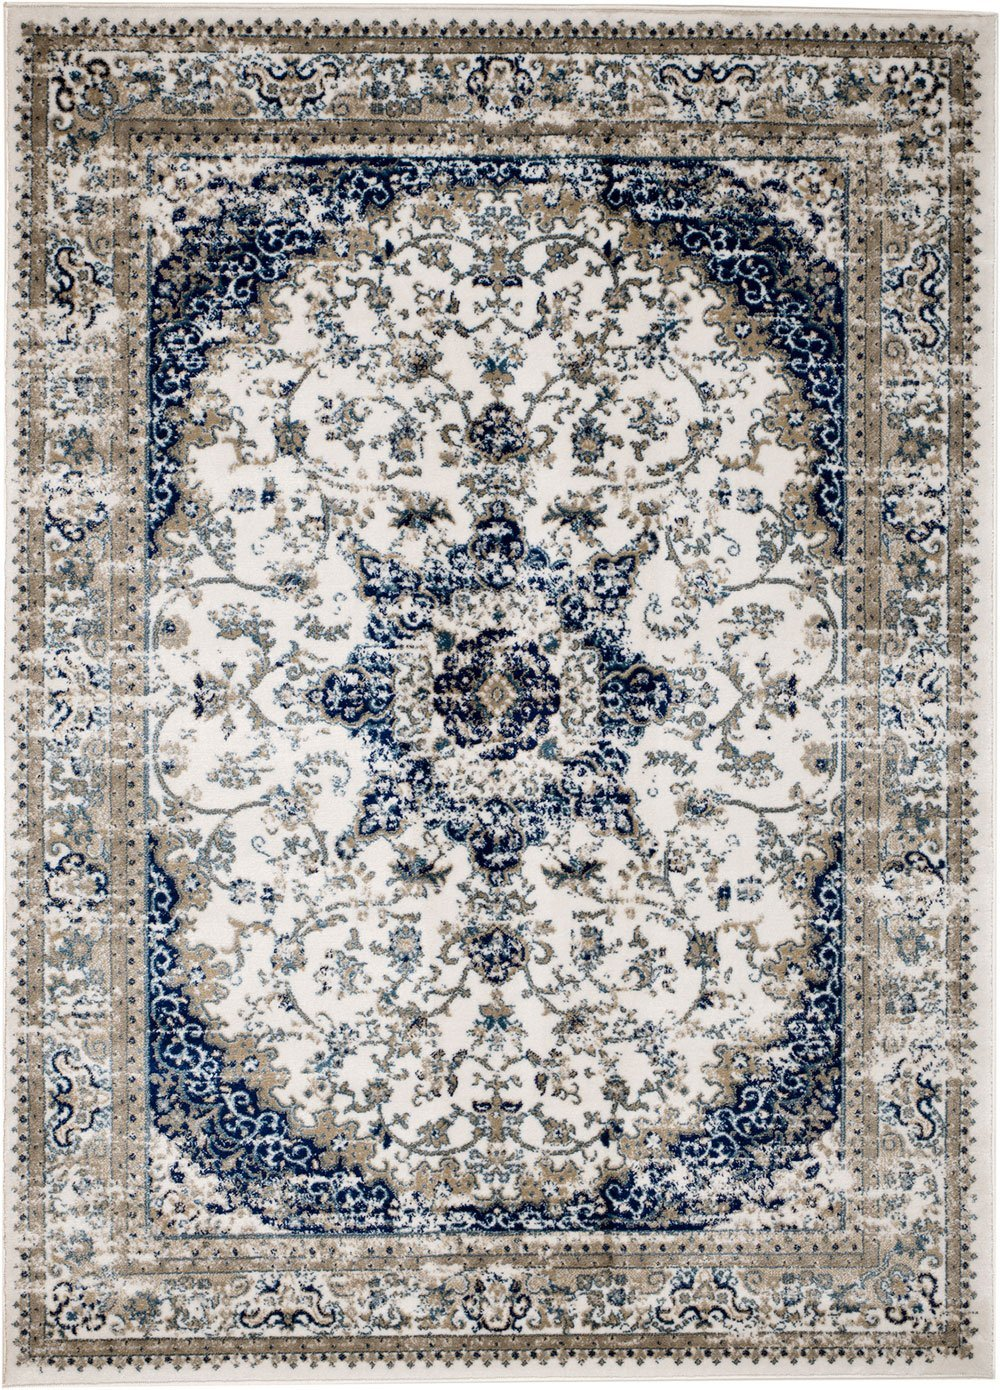 MADISON COLLECTION TN-W5MZ-GUWG 401 Vintage Distressed Style Area Rug Clearance Soft Pile Durable Size Option , 1'.10'' x 7 ' hallway runner